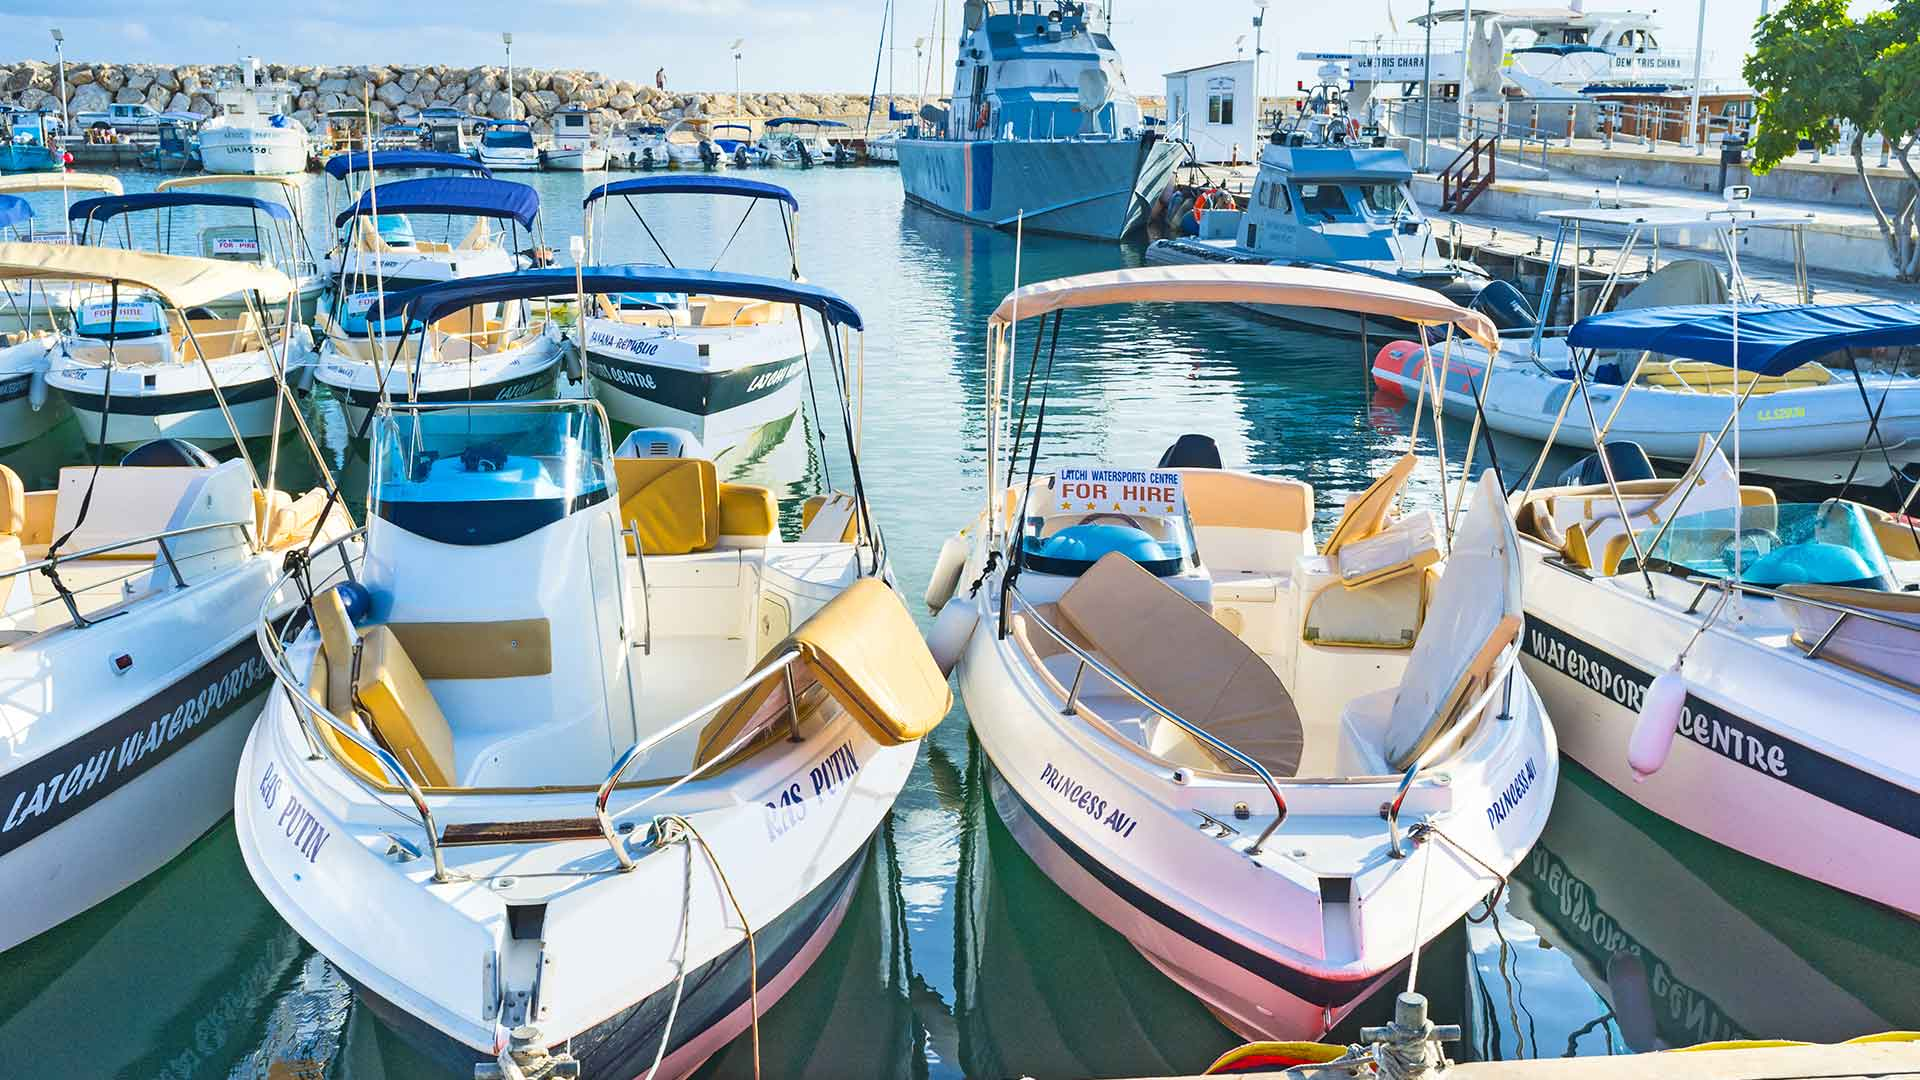 Latchi Watersports centre - Self Drive Boat Hire in Cyprus